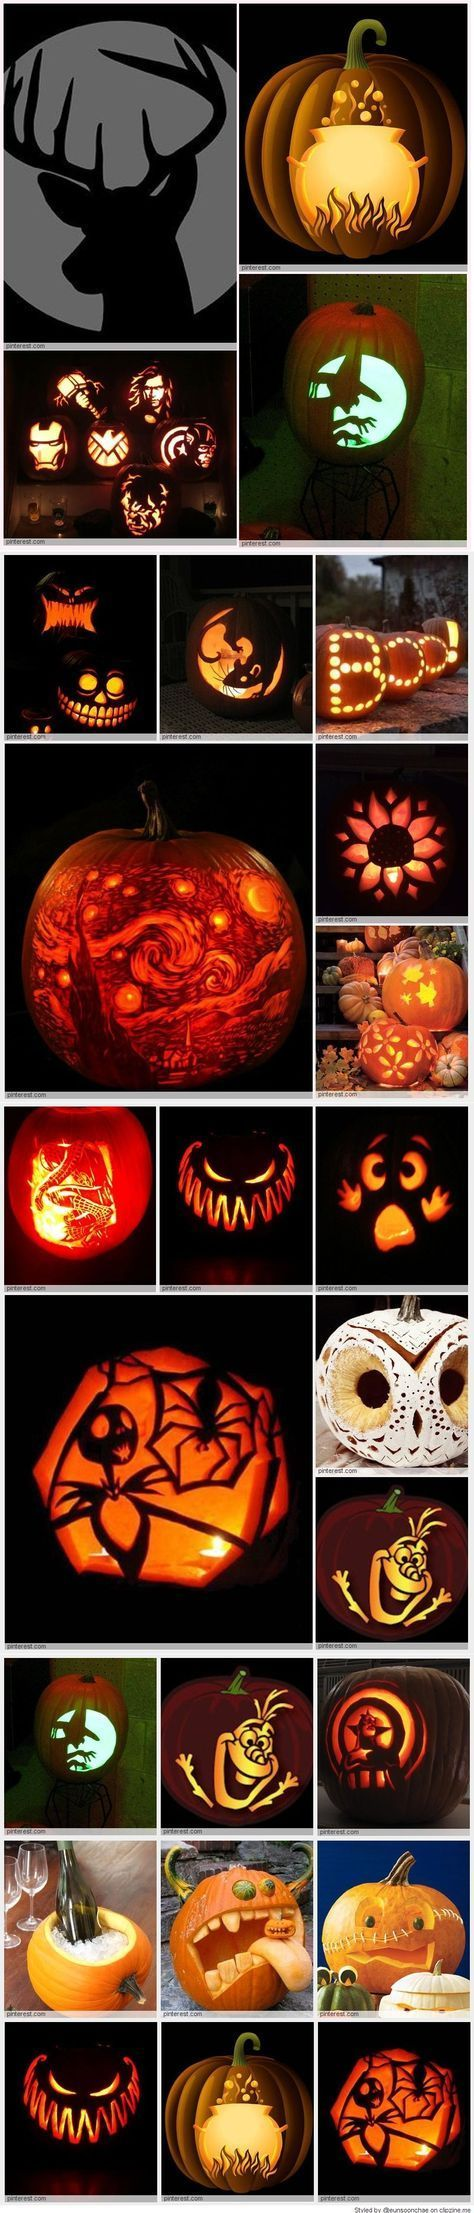 Pumpkin carving patterns lesson pinterest pumpkin carving